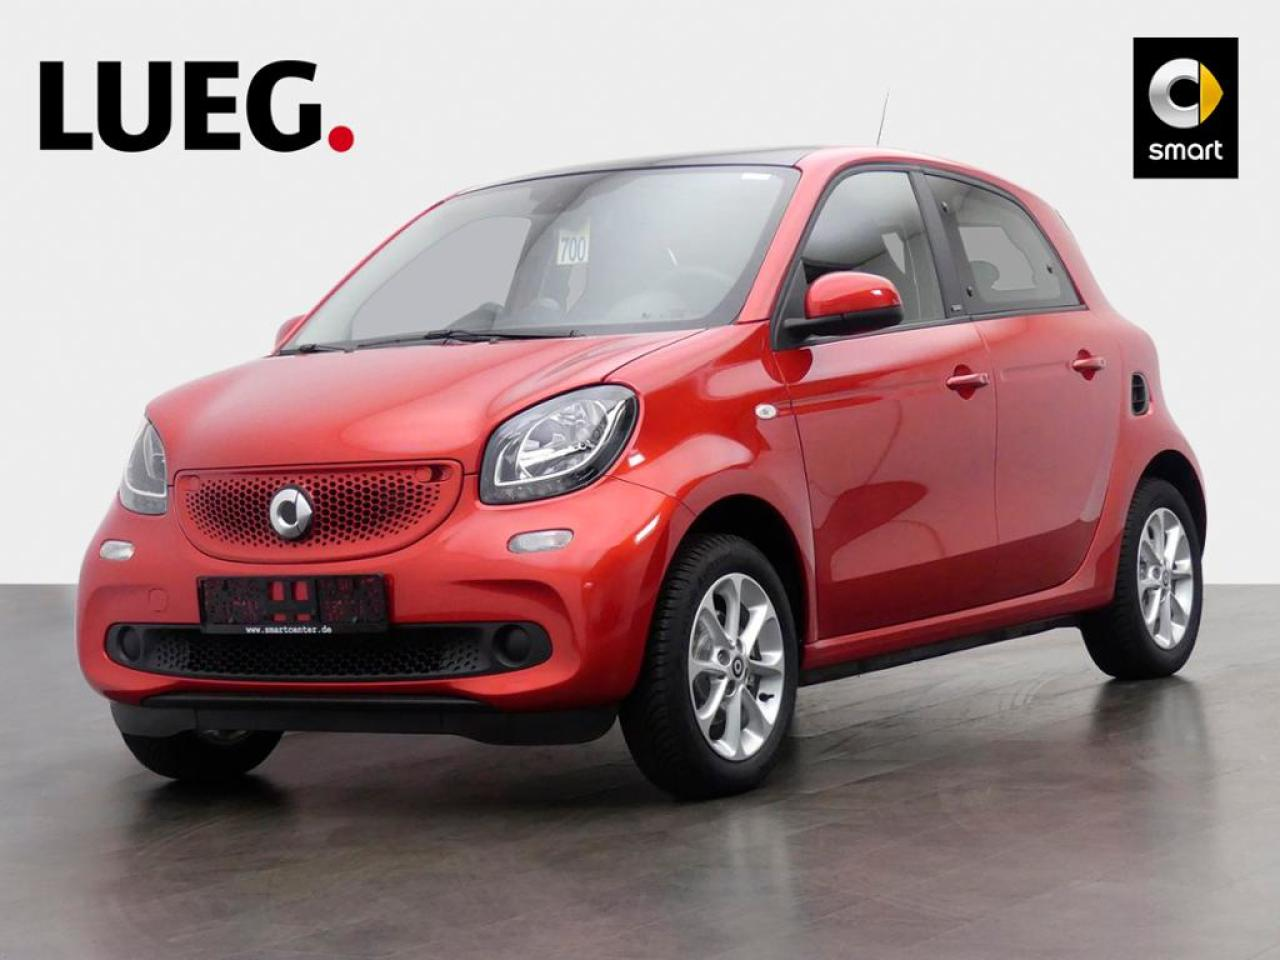 forfour 52kW (71 PS) passion+Pano.+Cool u. Audio